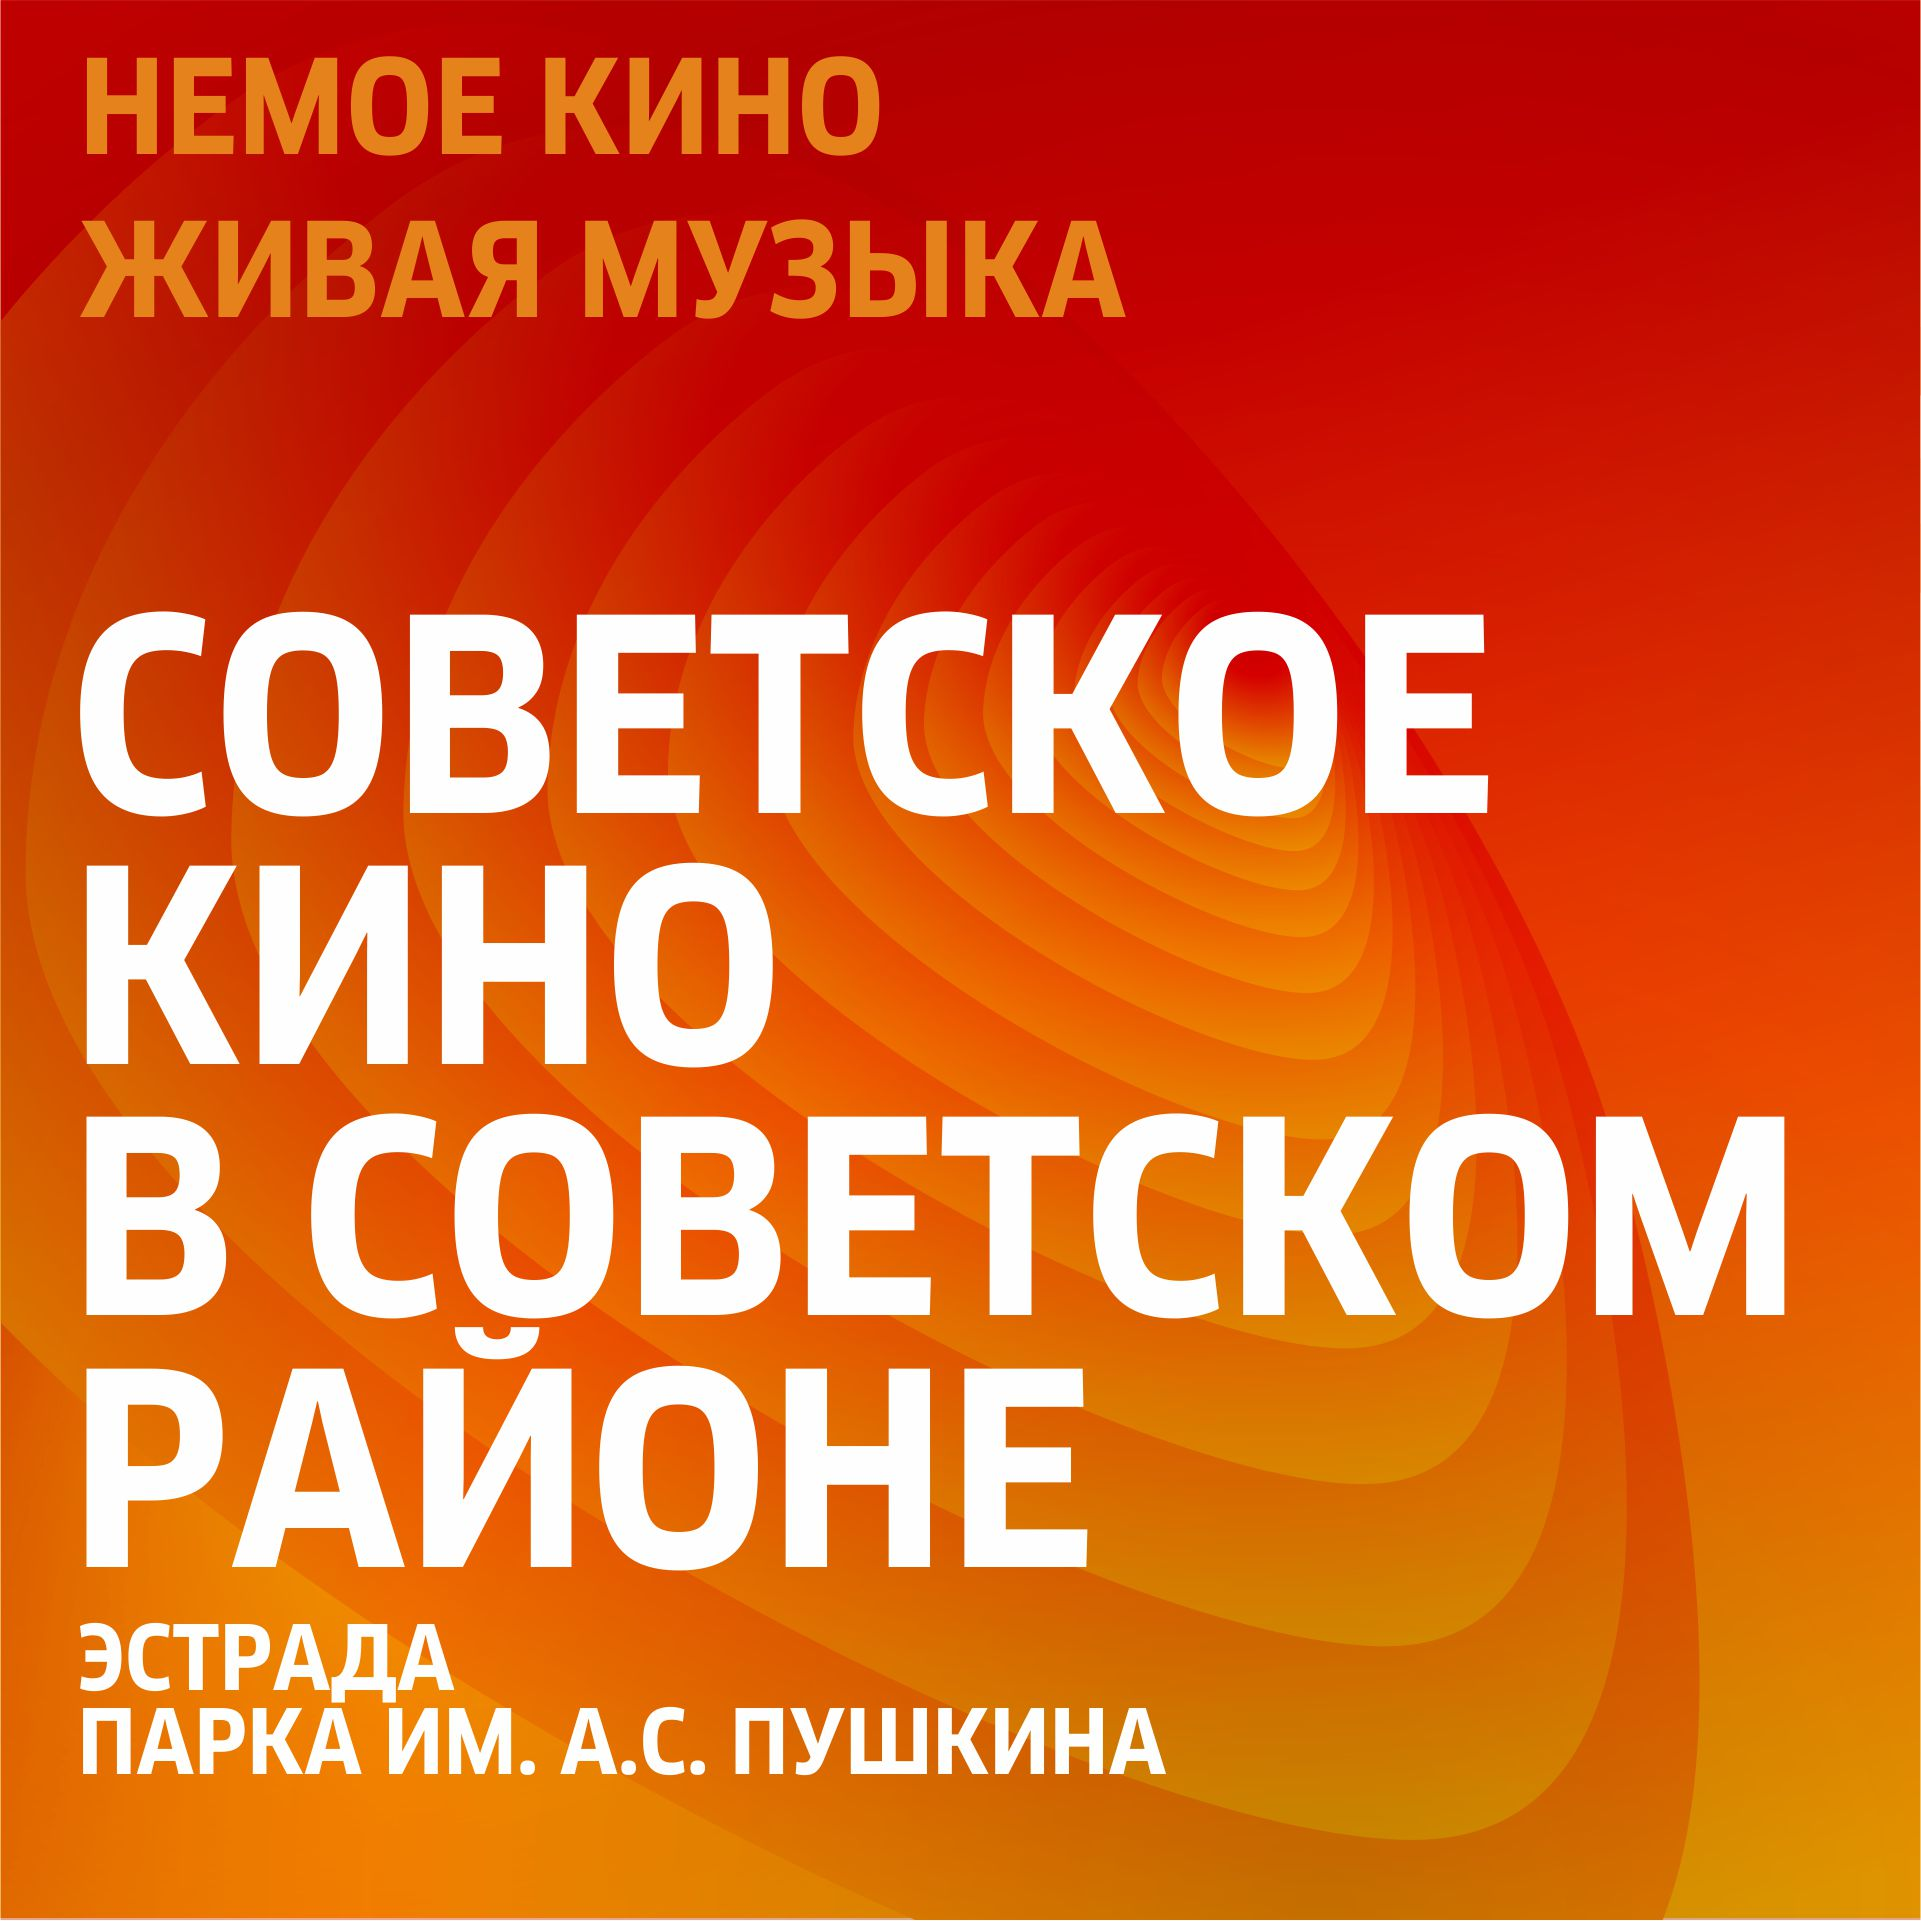 You are currently viewing Советское кино в Советском районе